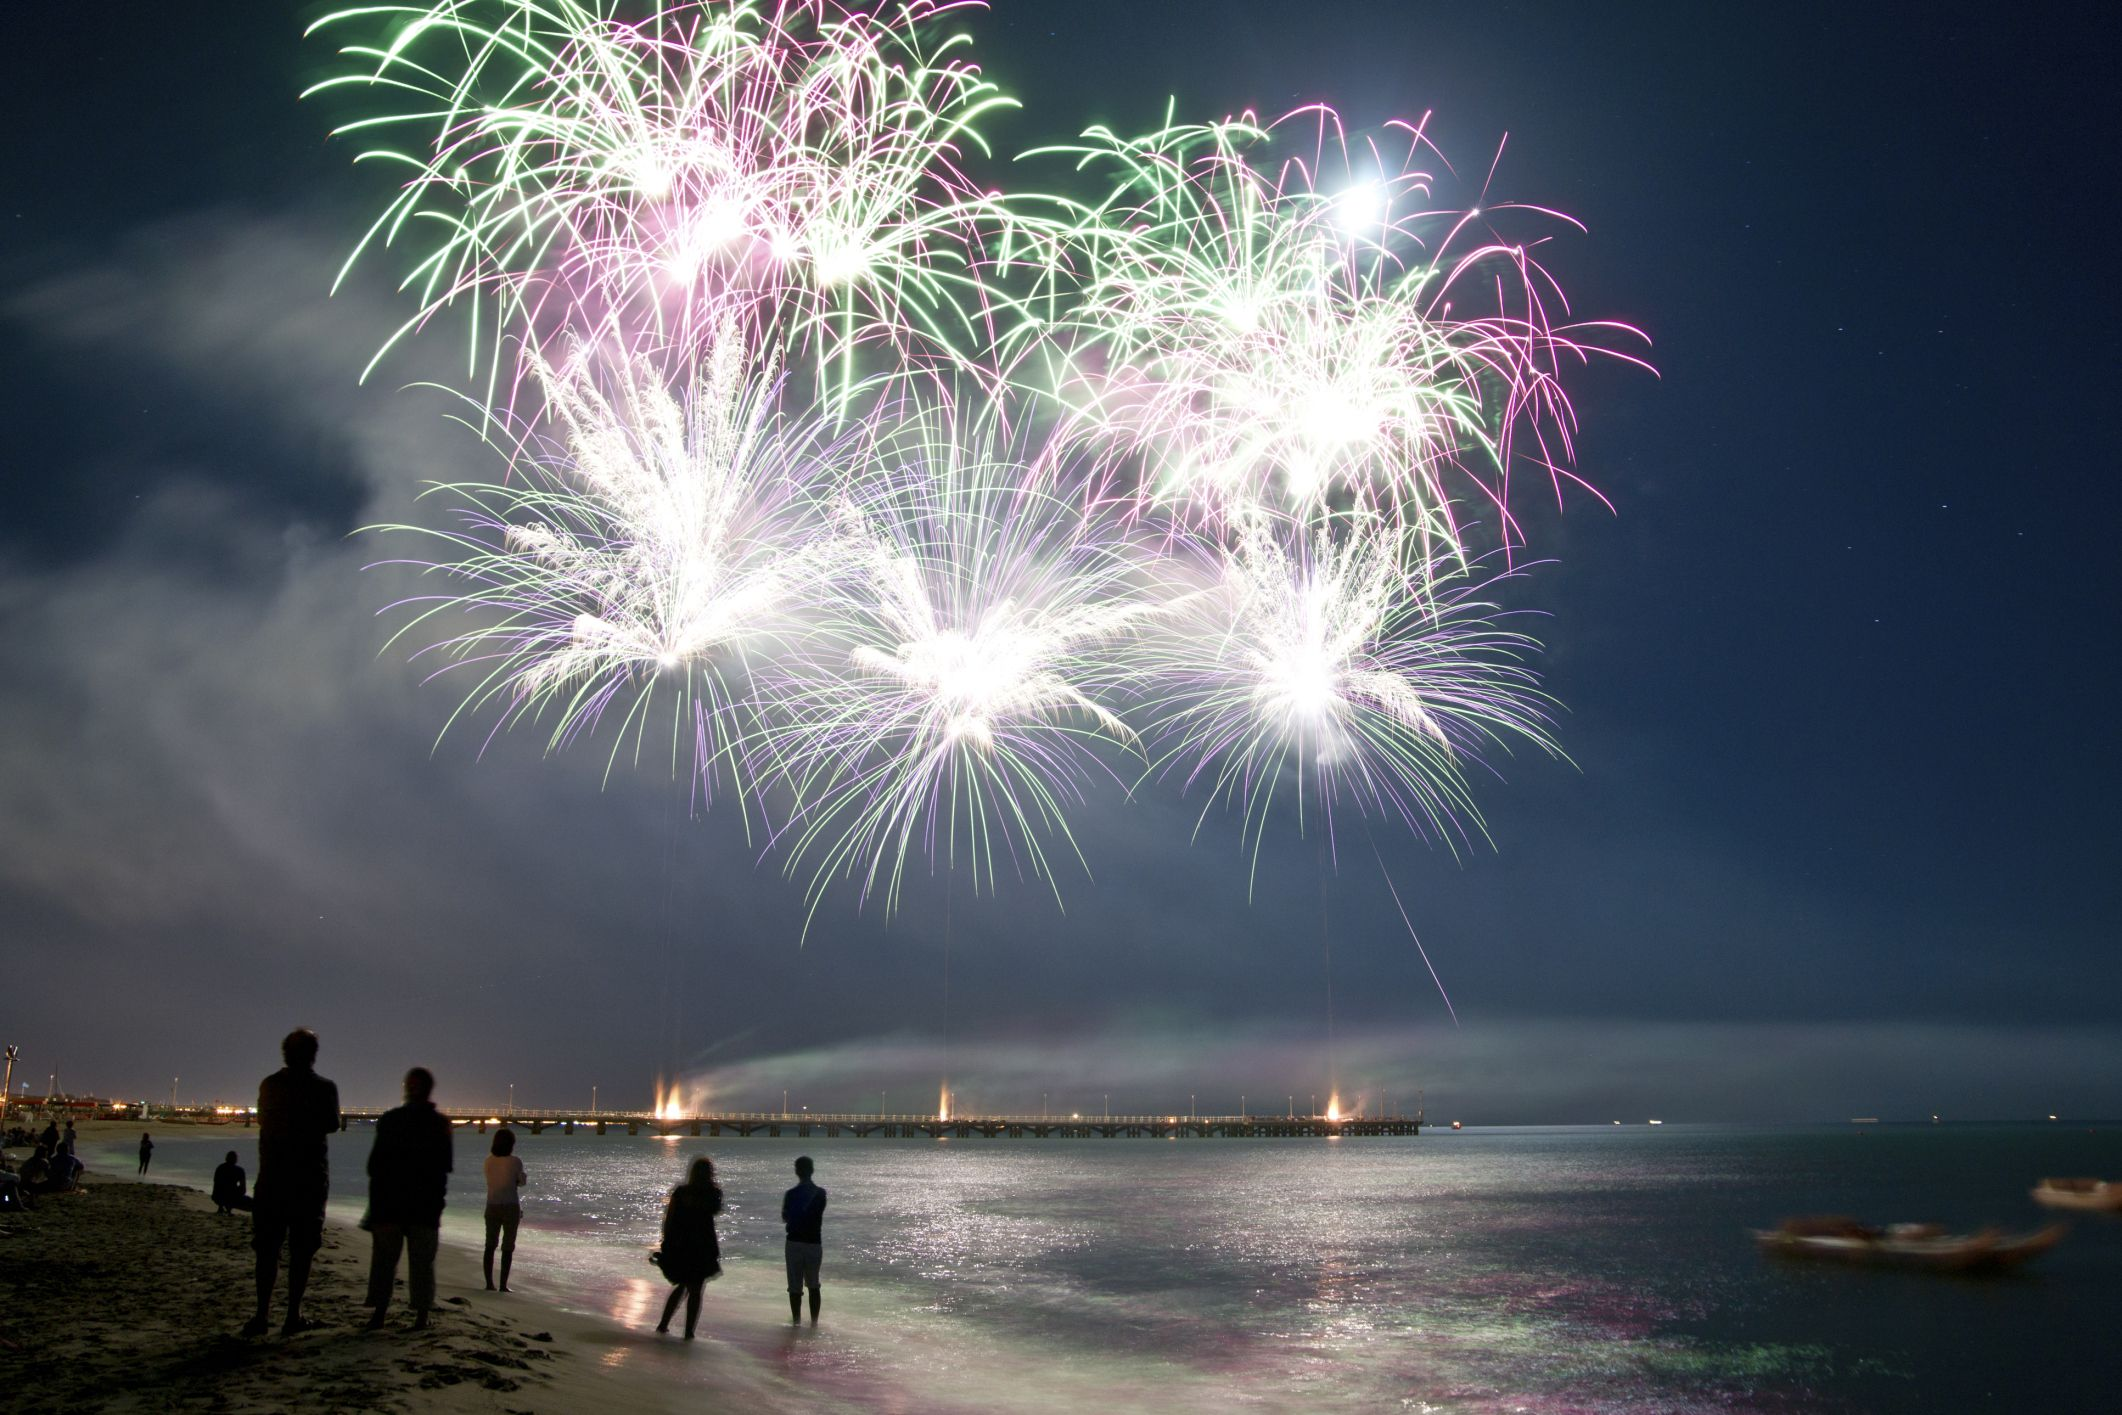 How to get a fireworks license in illinois